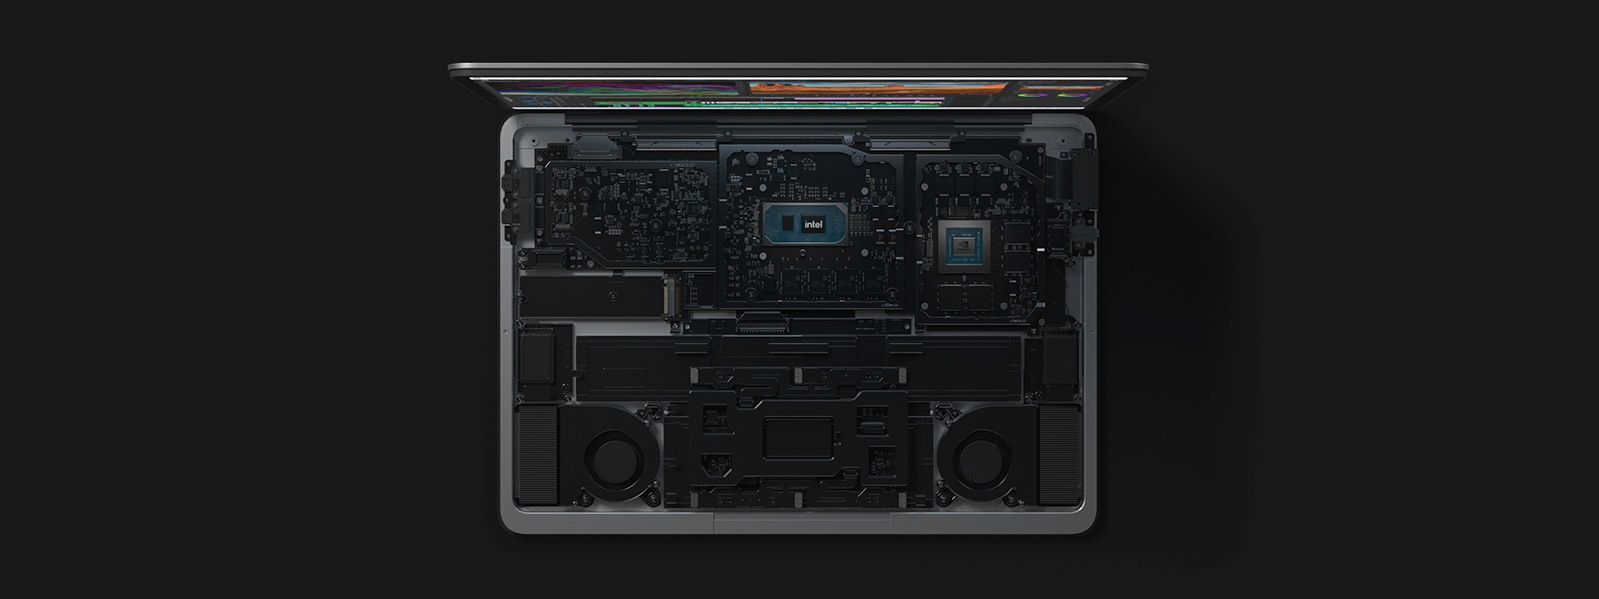 A top view of Surface Laptop Studio with keyboard removed revealing the internal hardware.